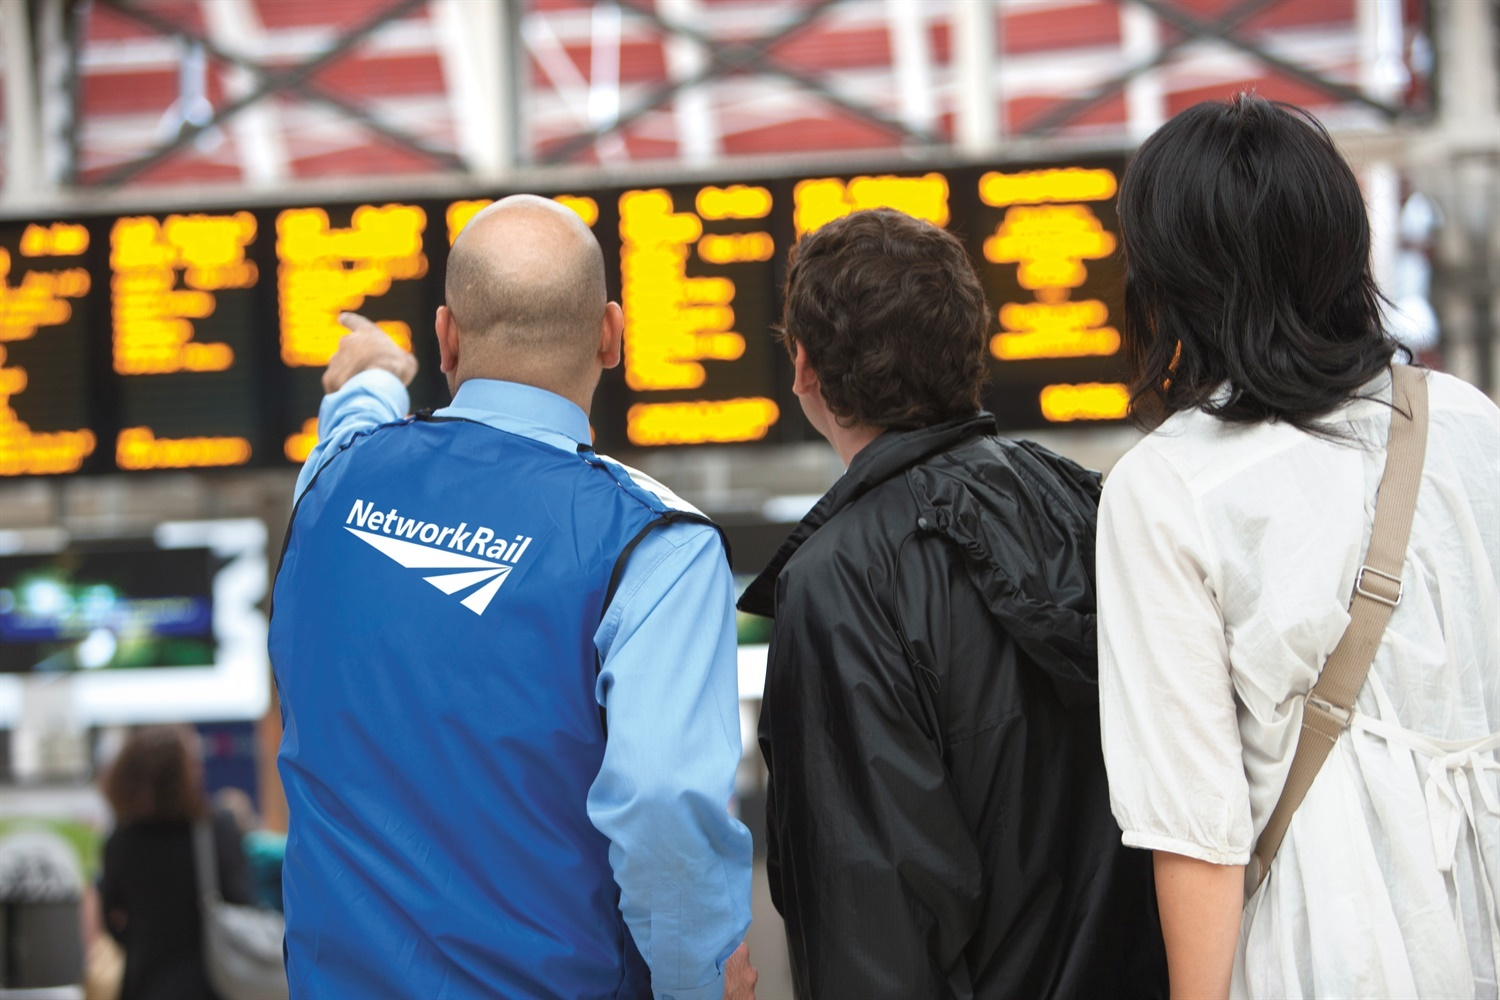 Passenger complaints skyrocket by 13% in Q2 figures